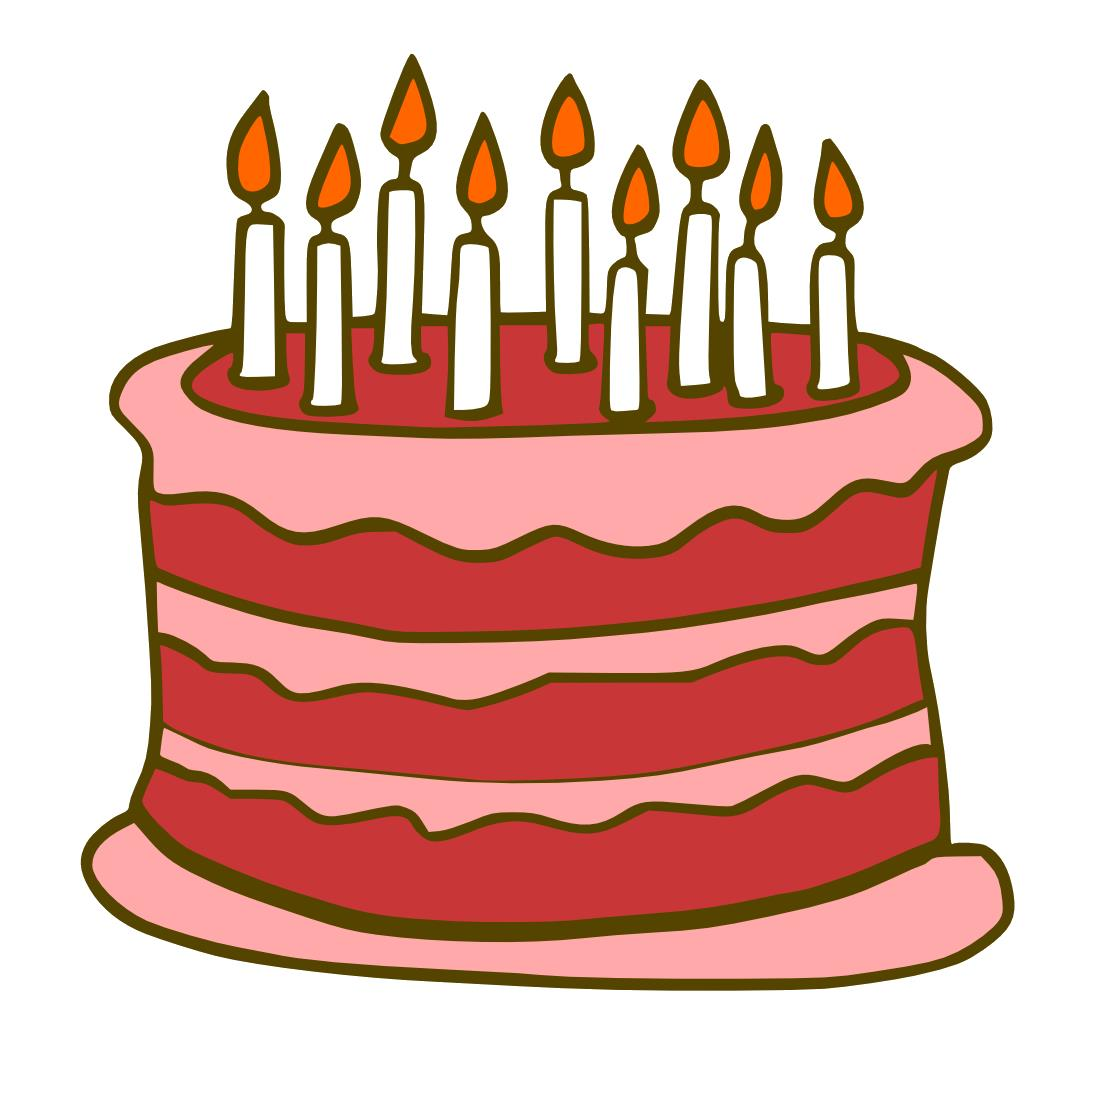 birthday cake clip art png ; Birthday-Cake-Free-Download-PNG